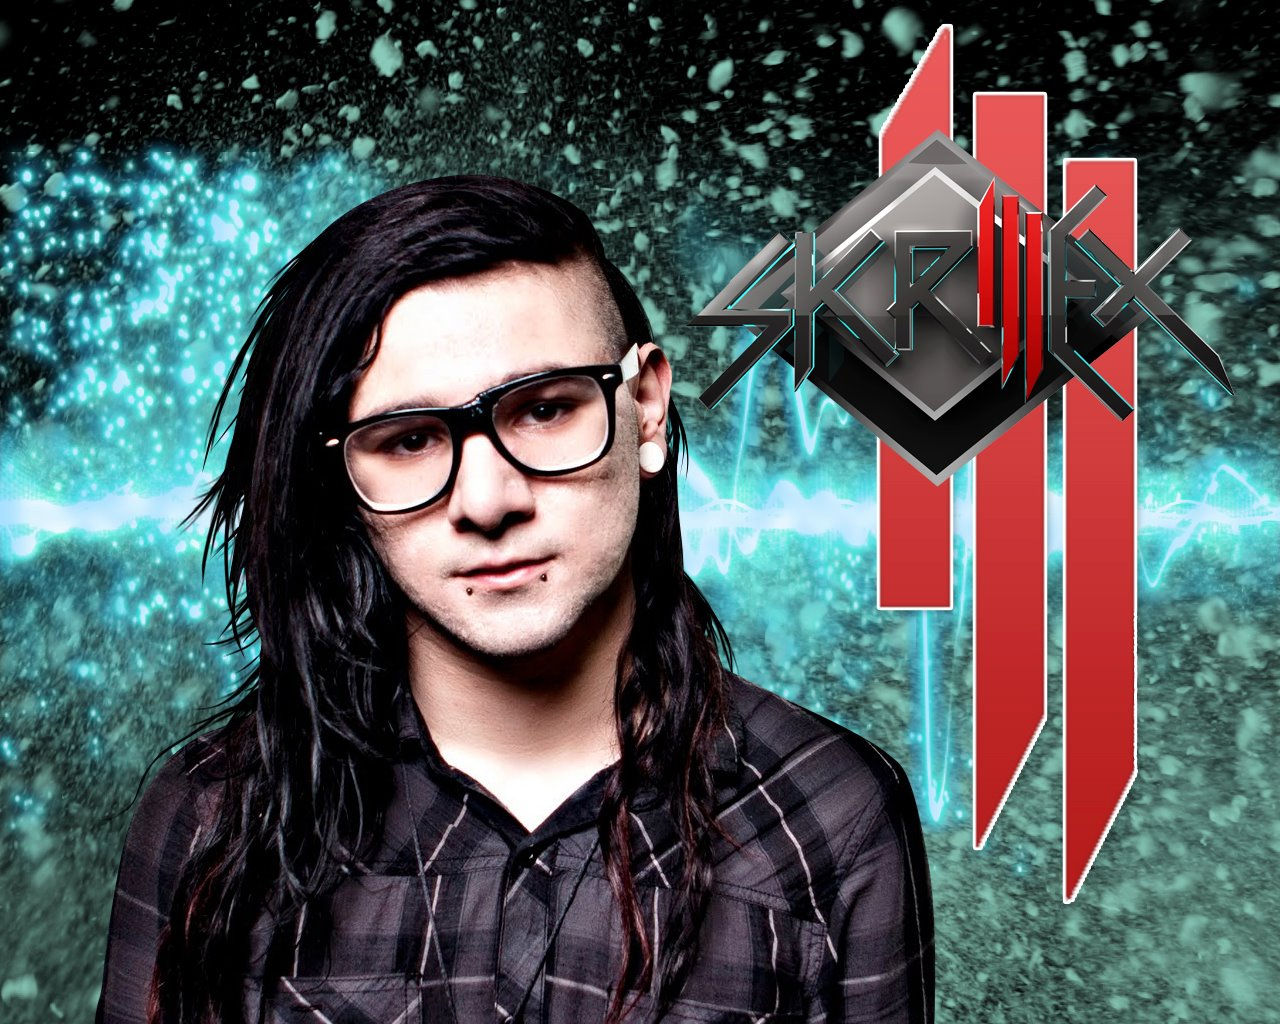 Images of 1280x1024 Skrillex 1600x900 - #SC